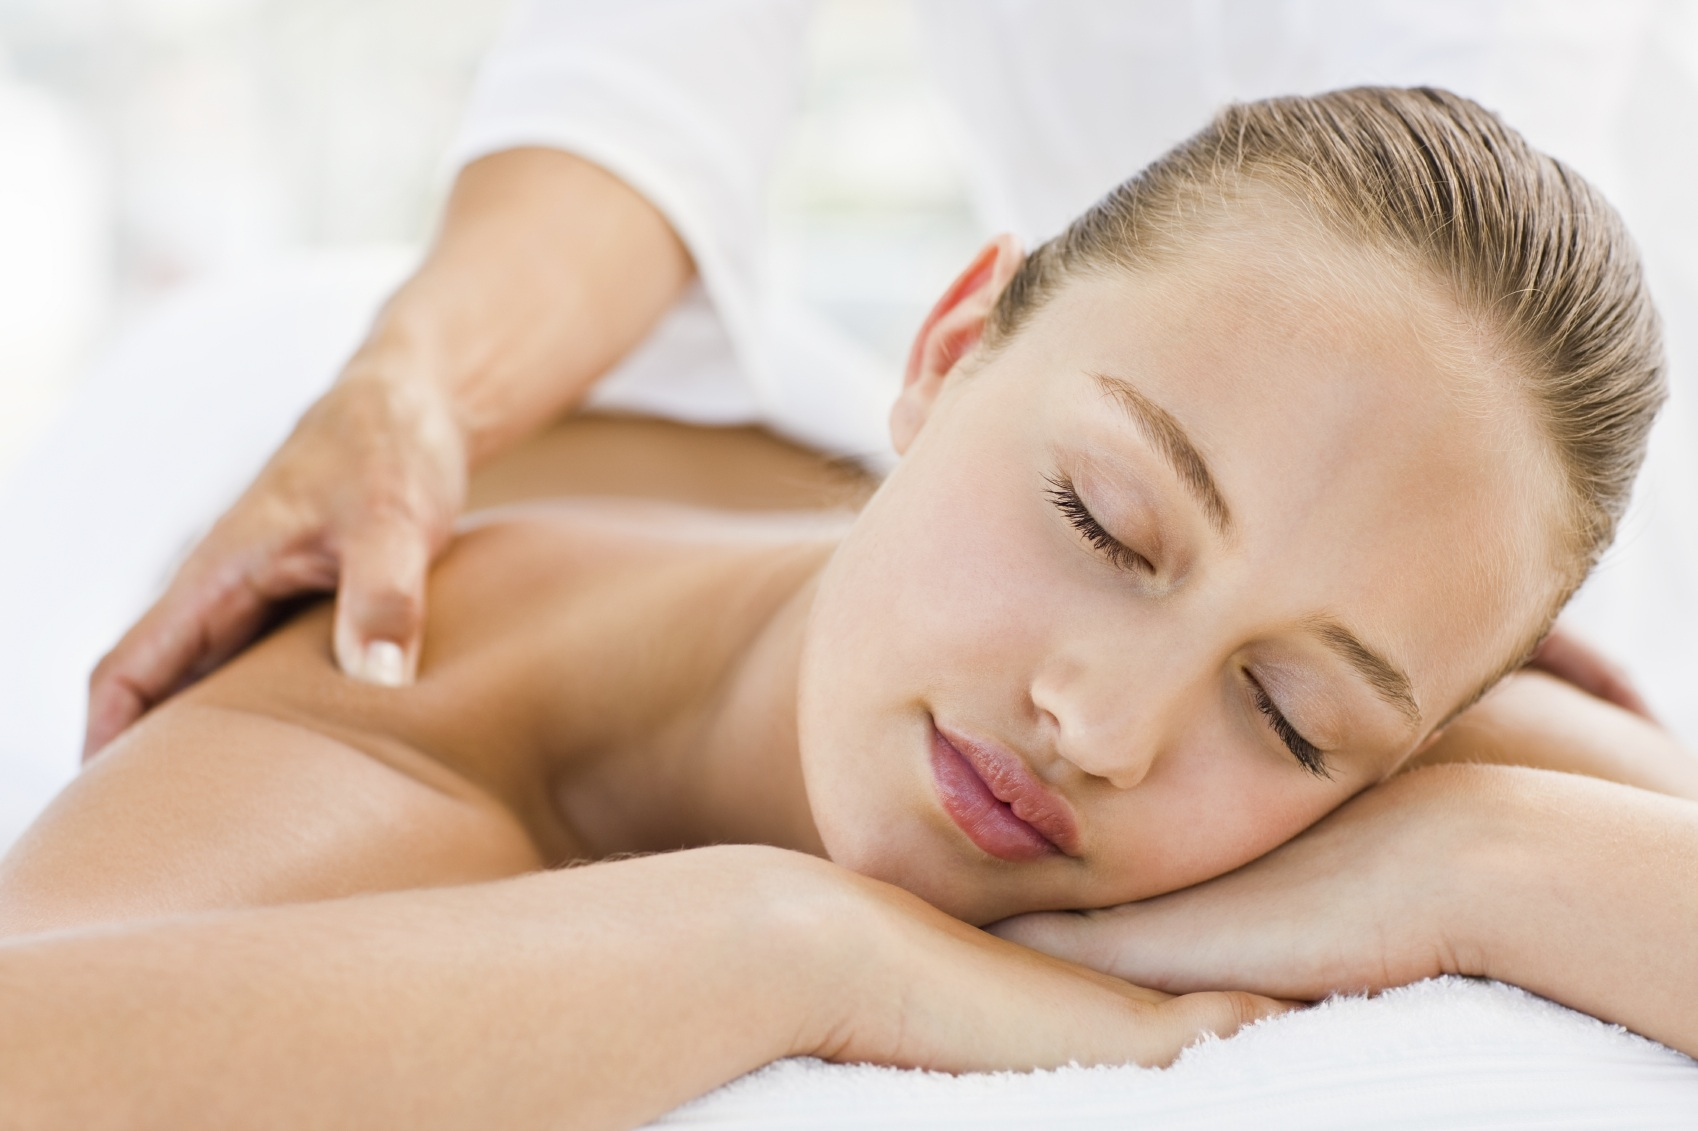 Corporate Rates - Take some well deserved self care, and make HealFlow your home away from home.With our Corporate Rate you just need to book at least one massage per month, and will have a preferred rate with us for all your appointments.Be part of the family.Contact us through email and become part of the HealFlow family: reservations@healflow.ca